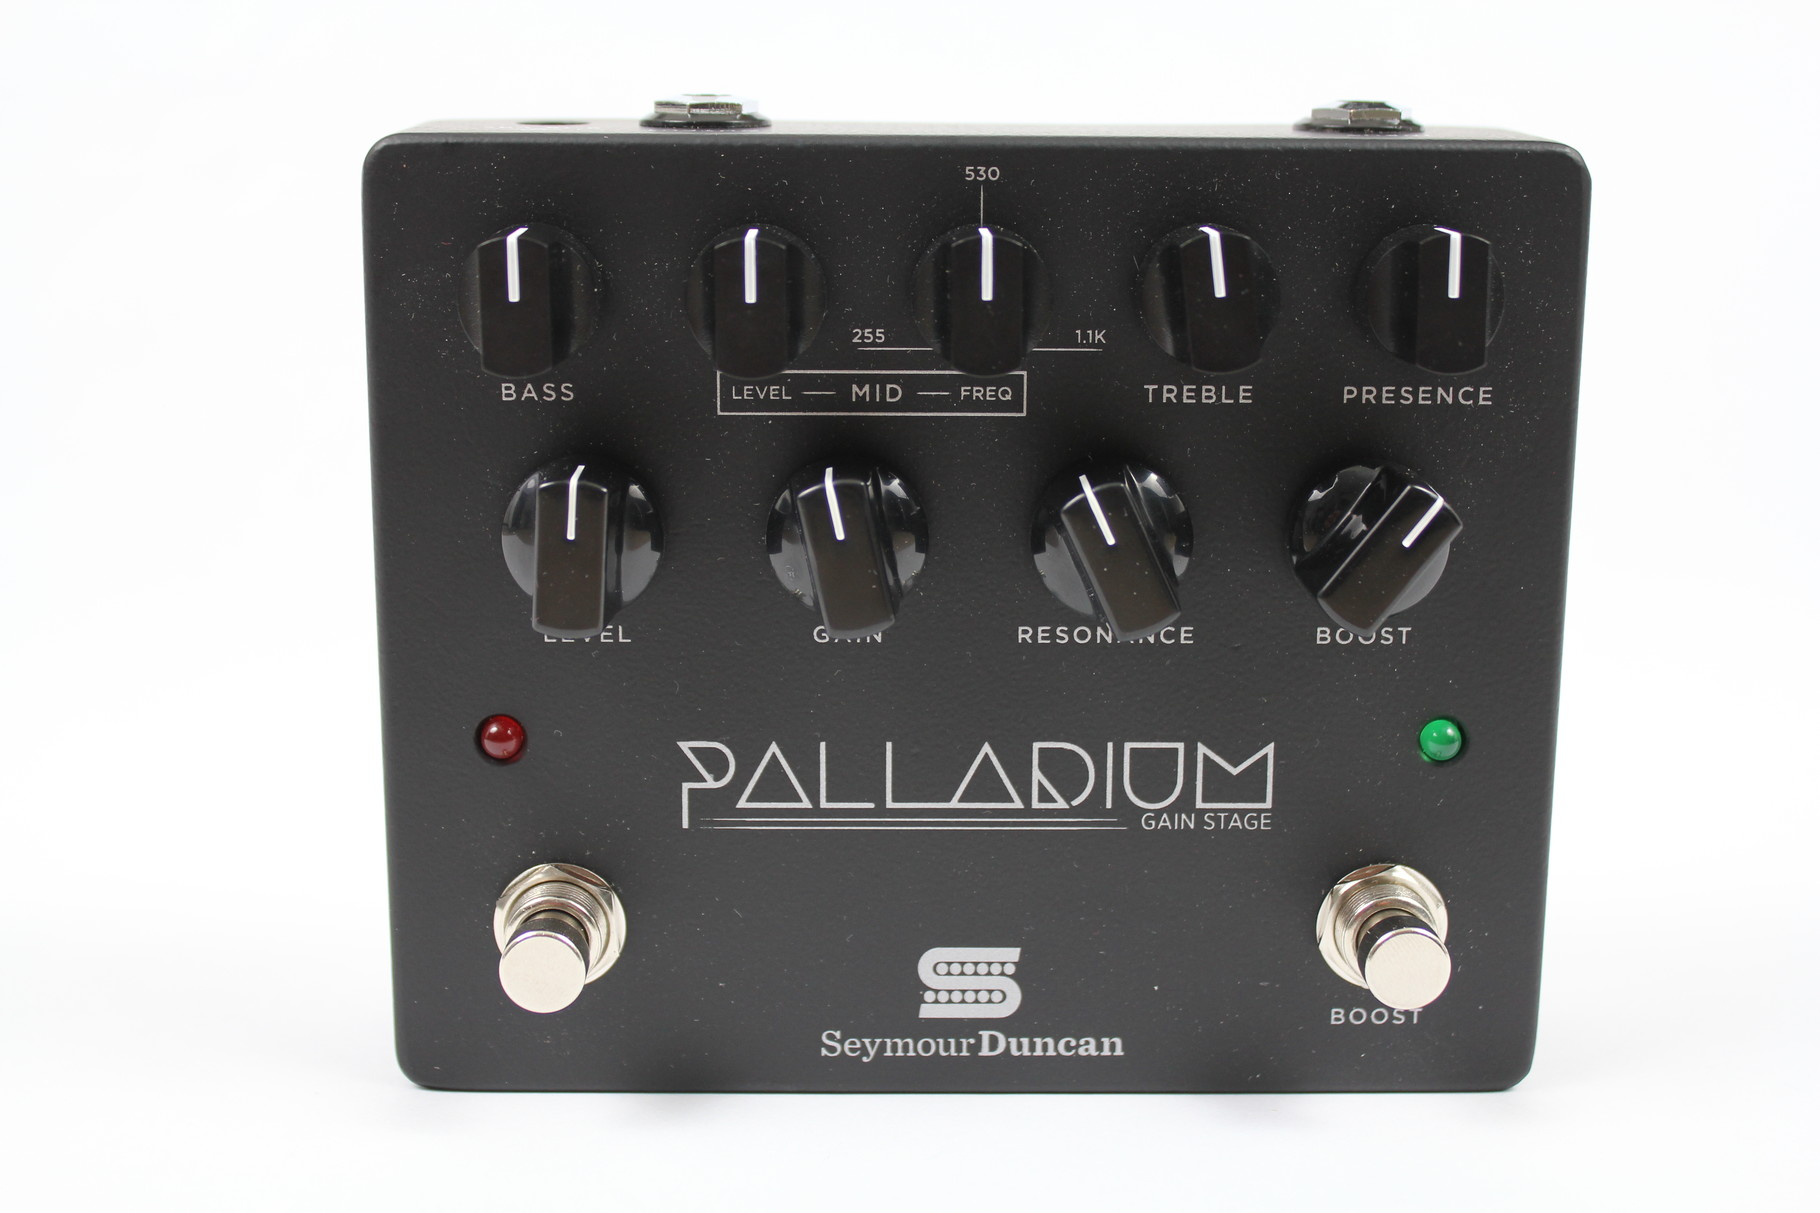 Seymour Duncan Palladium Gain Stage